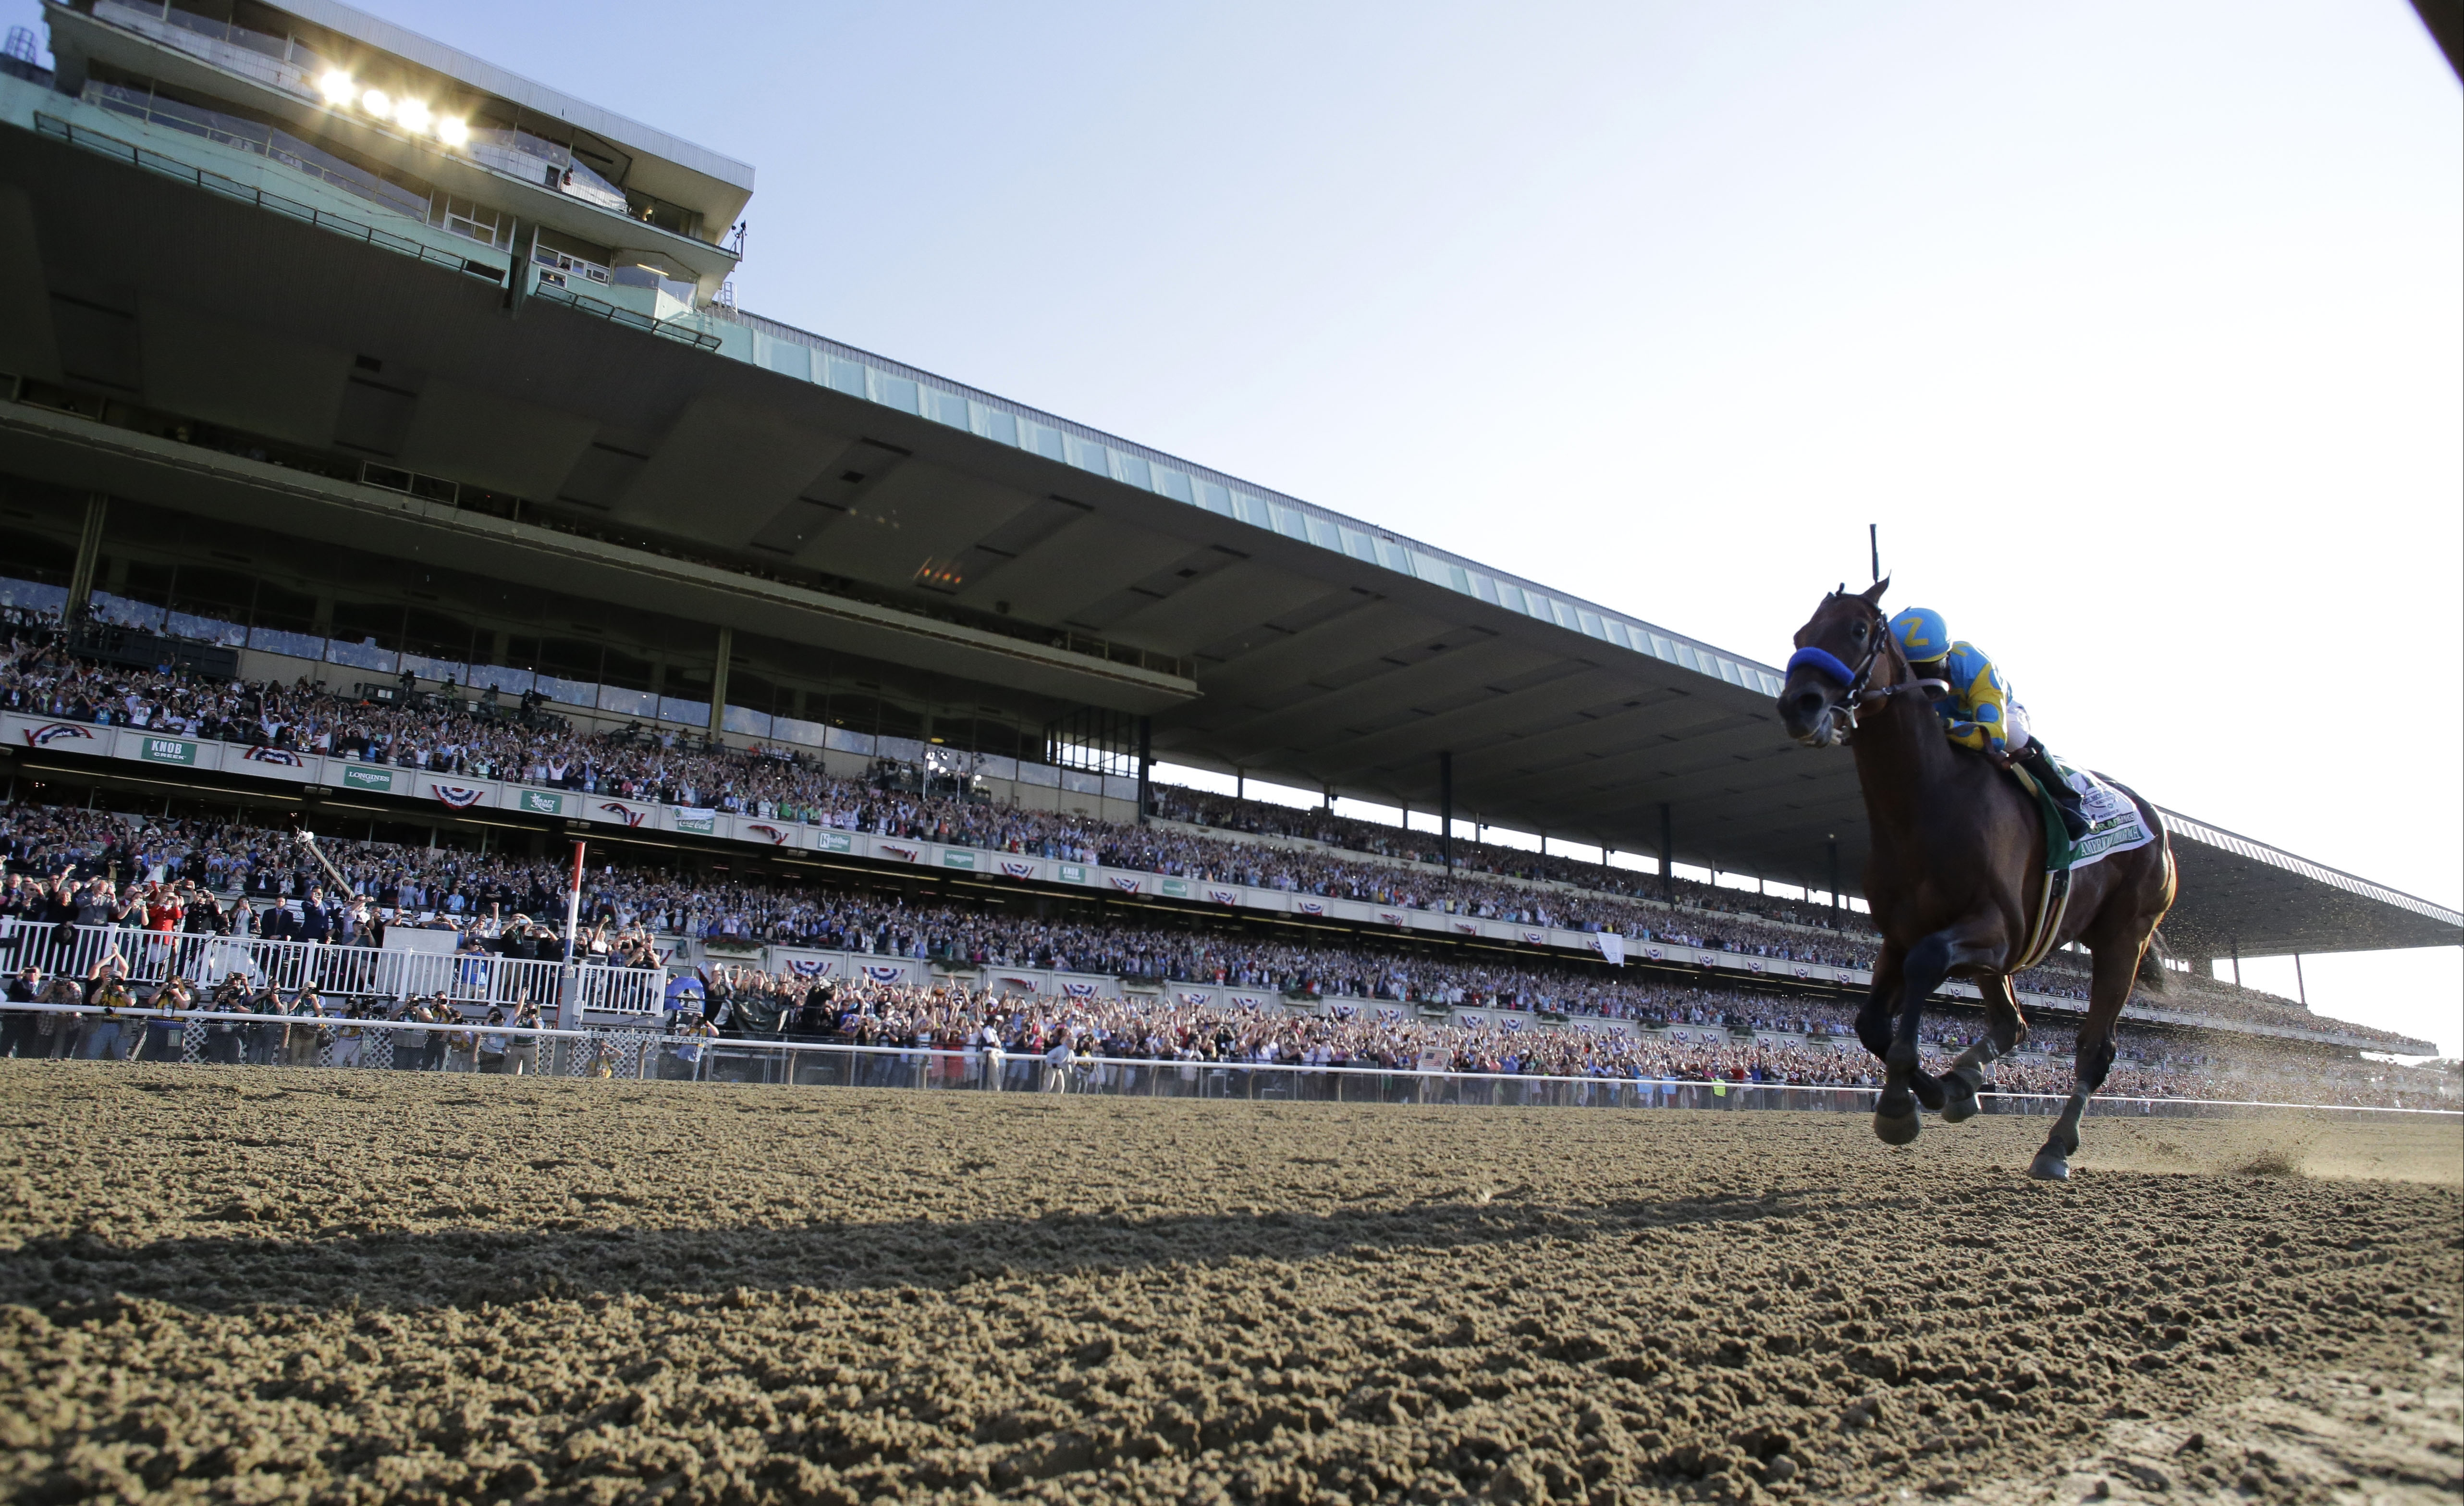 American Pharoah with Victor Espinoza up crosses the finish line to win the 147th running of the Belmont Stakes horse race at Belmont Park, Saturday, June 6, 2015, in Elmont, N.Y. American Pharoah won the race to become the first horse to win the Triple C